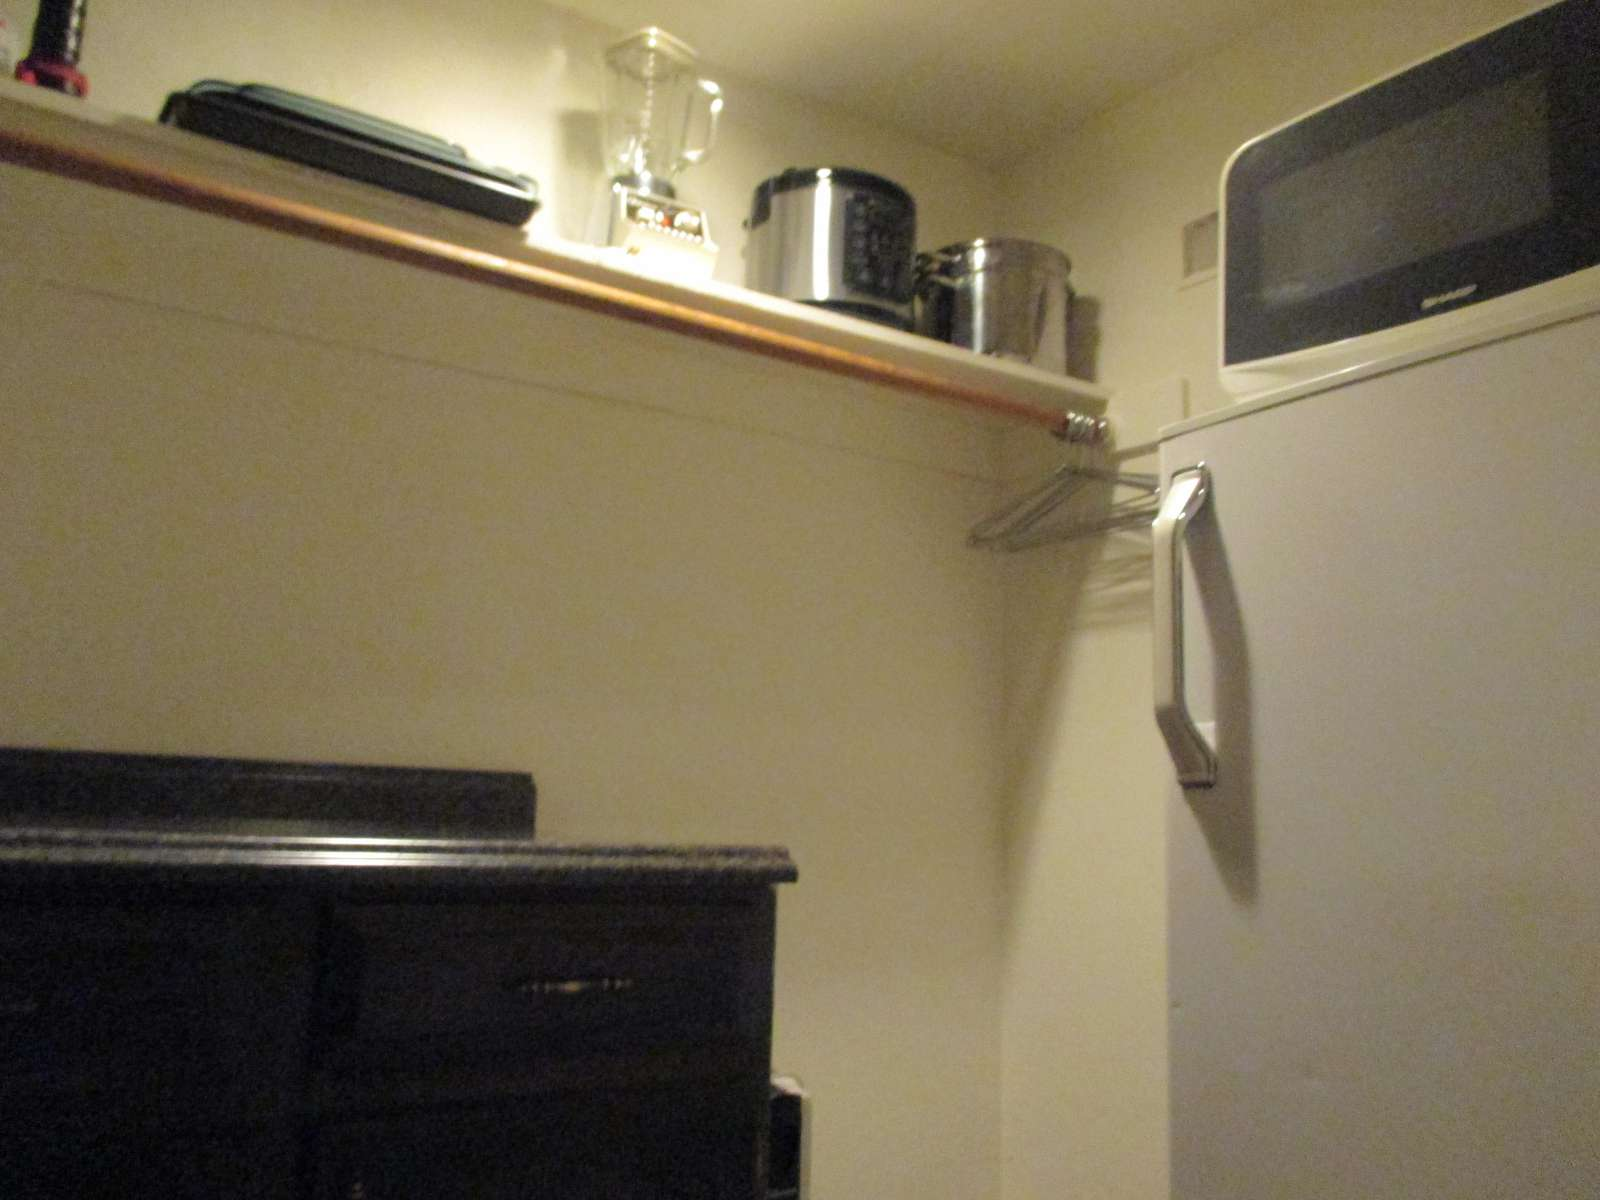 The walk-in closet behind the kitchen with refrigerator/freezer and microwave.